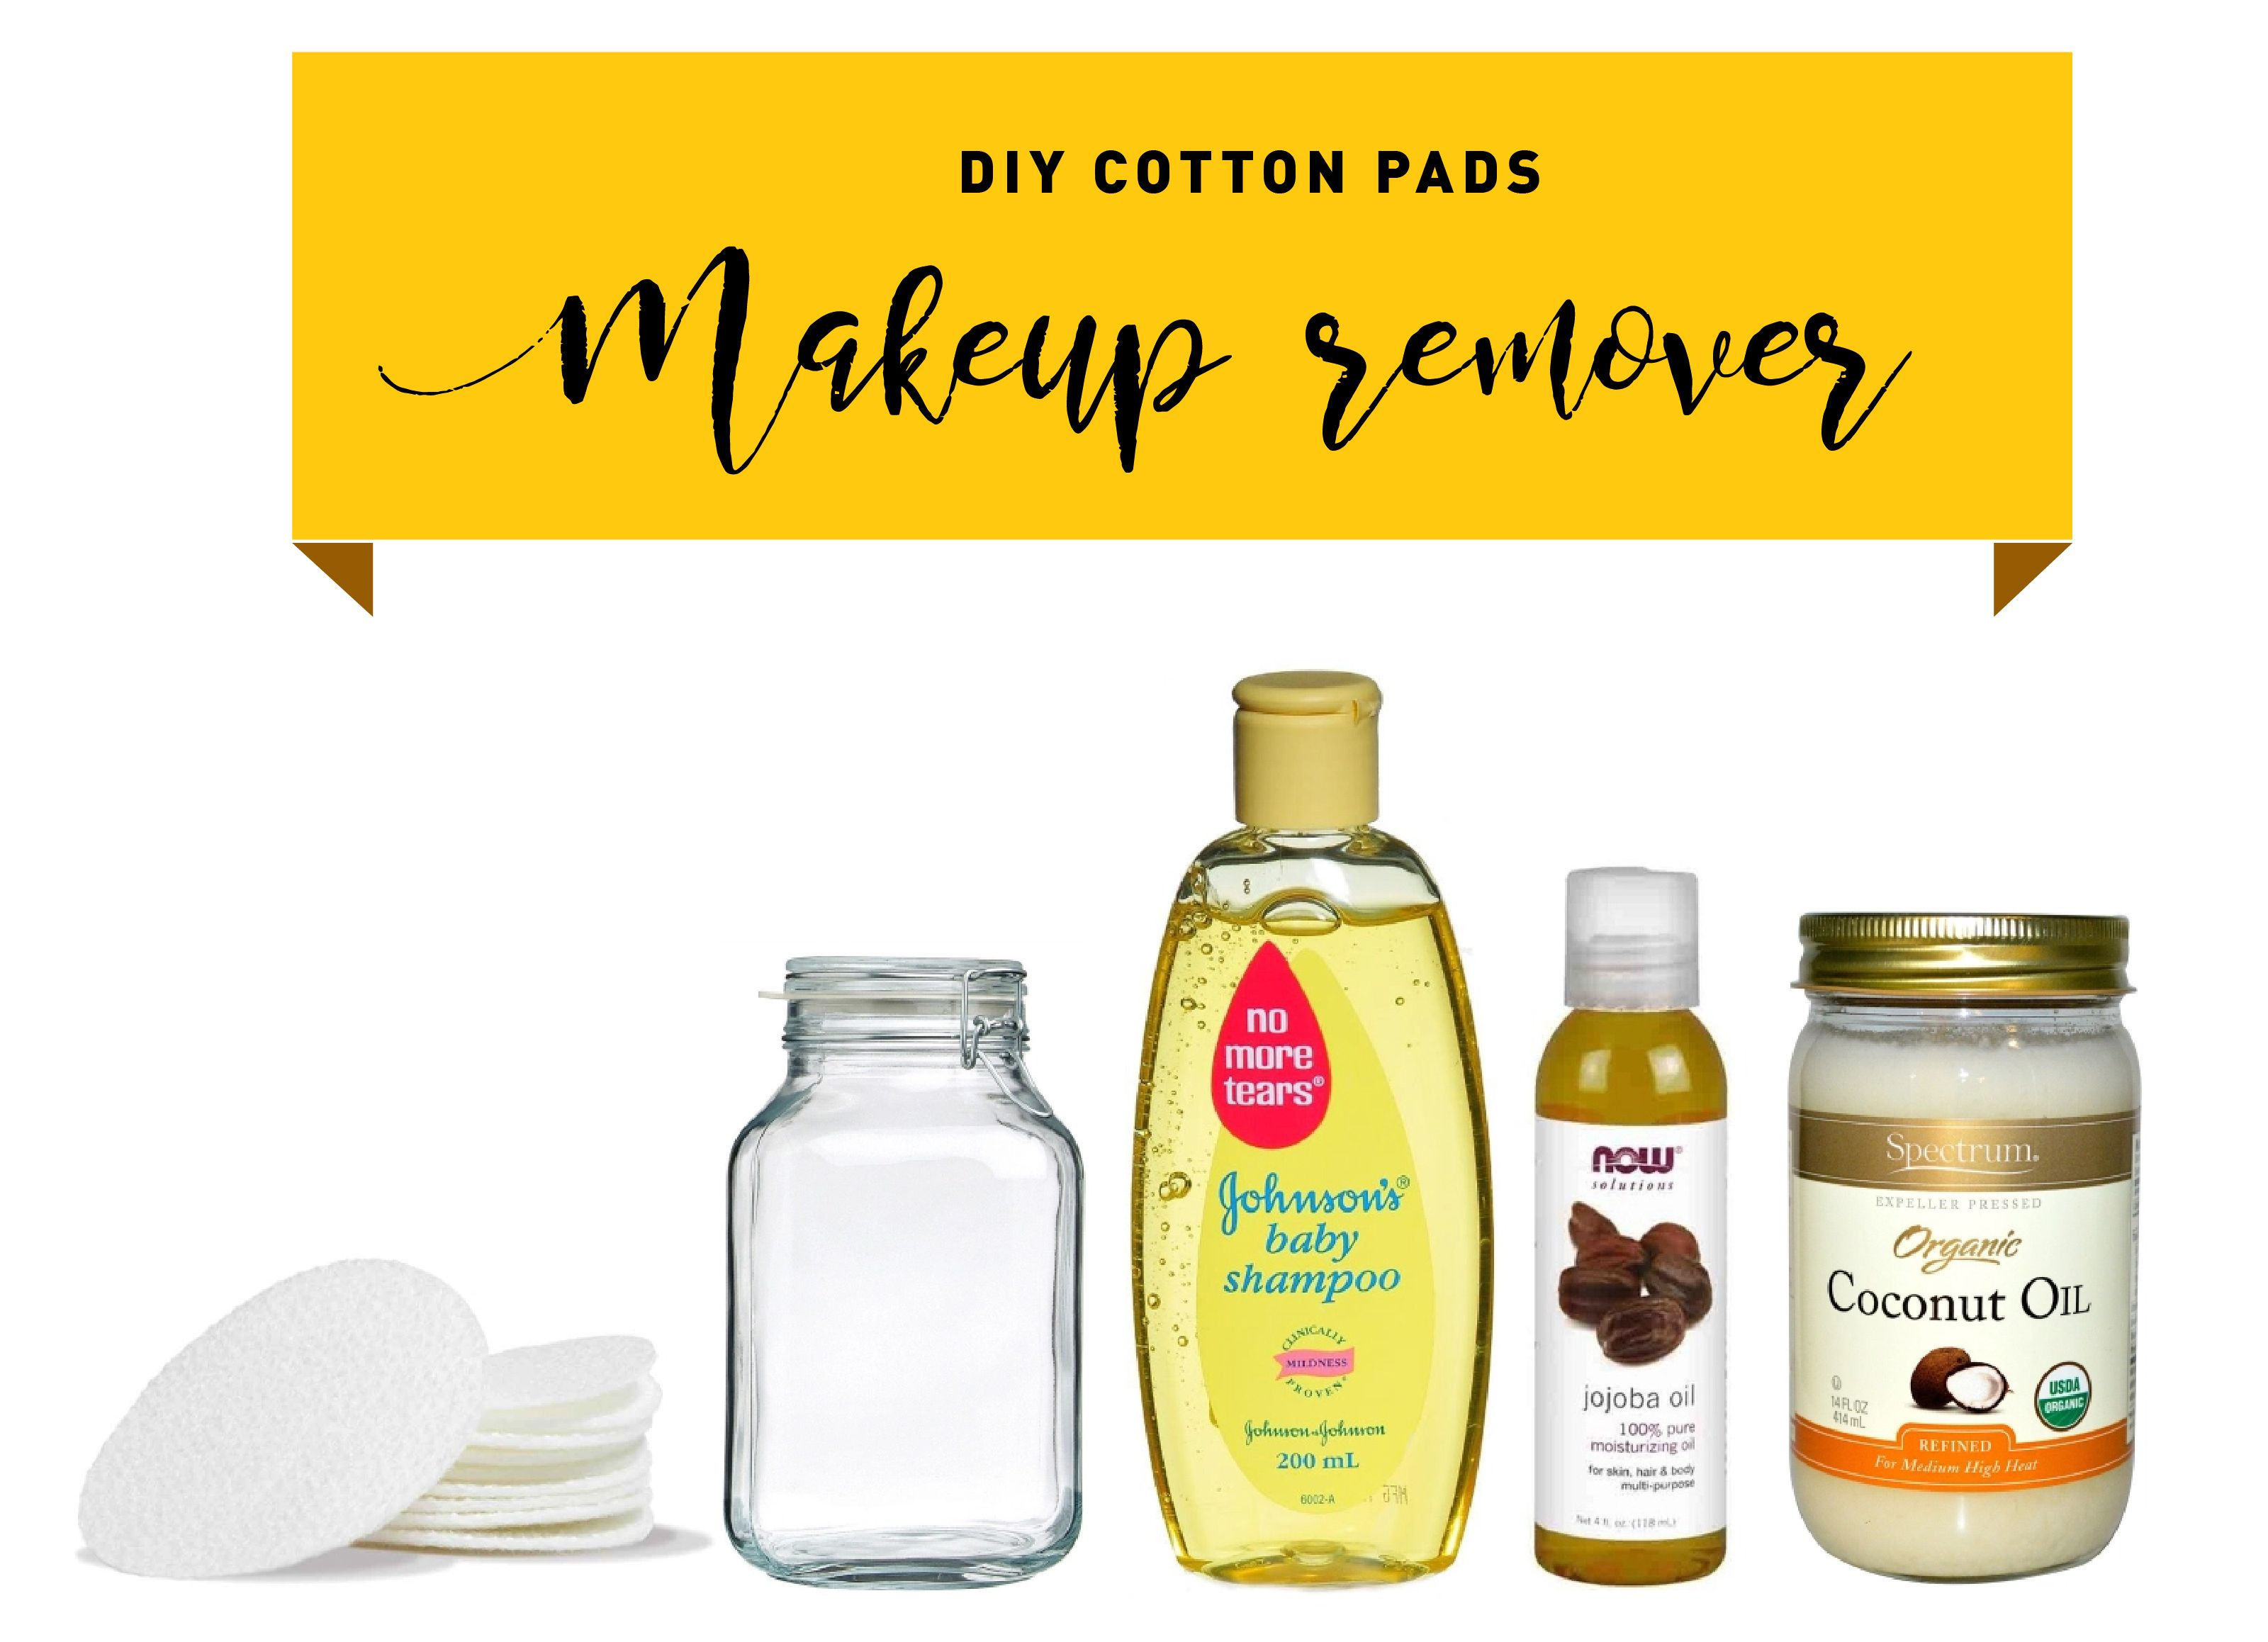 DIY Cotton Pads Makeup Remover Cotton pads, Makeup